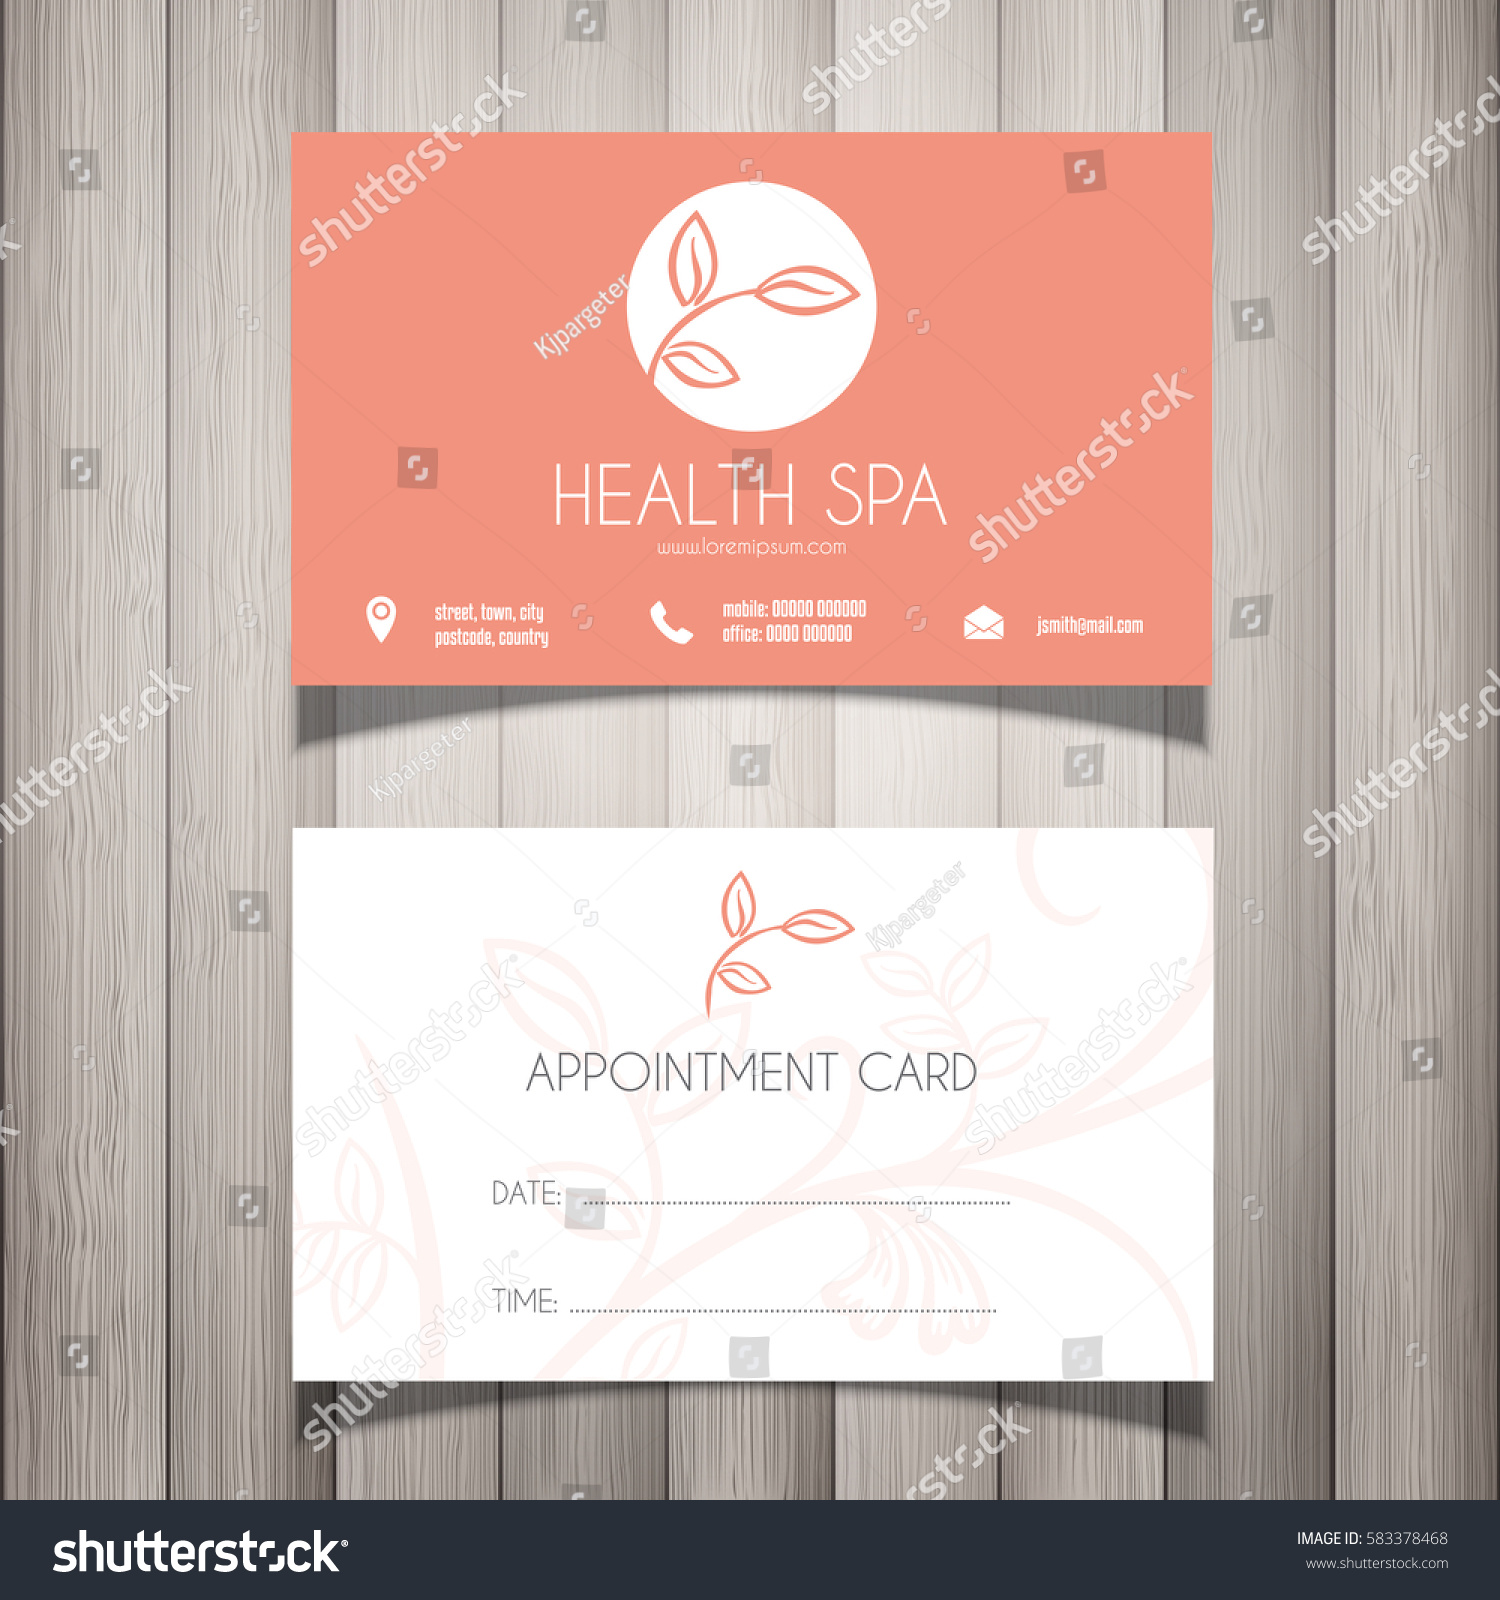 Health Spa Beautician Business Card Appointment Stock Vector ...